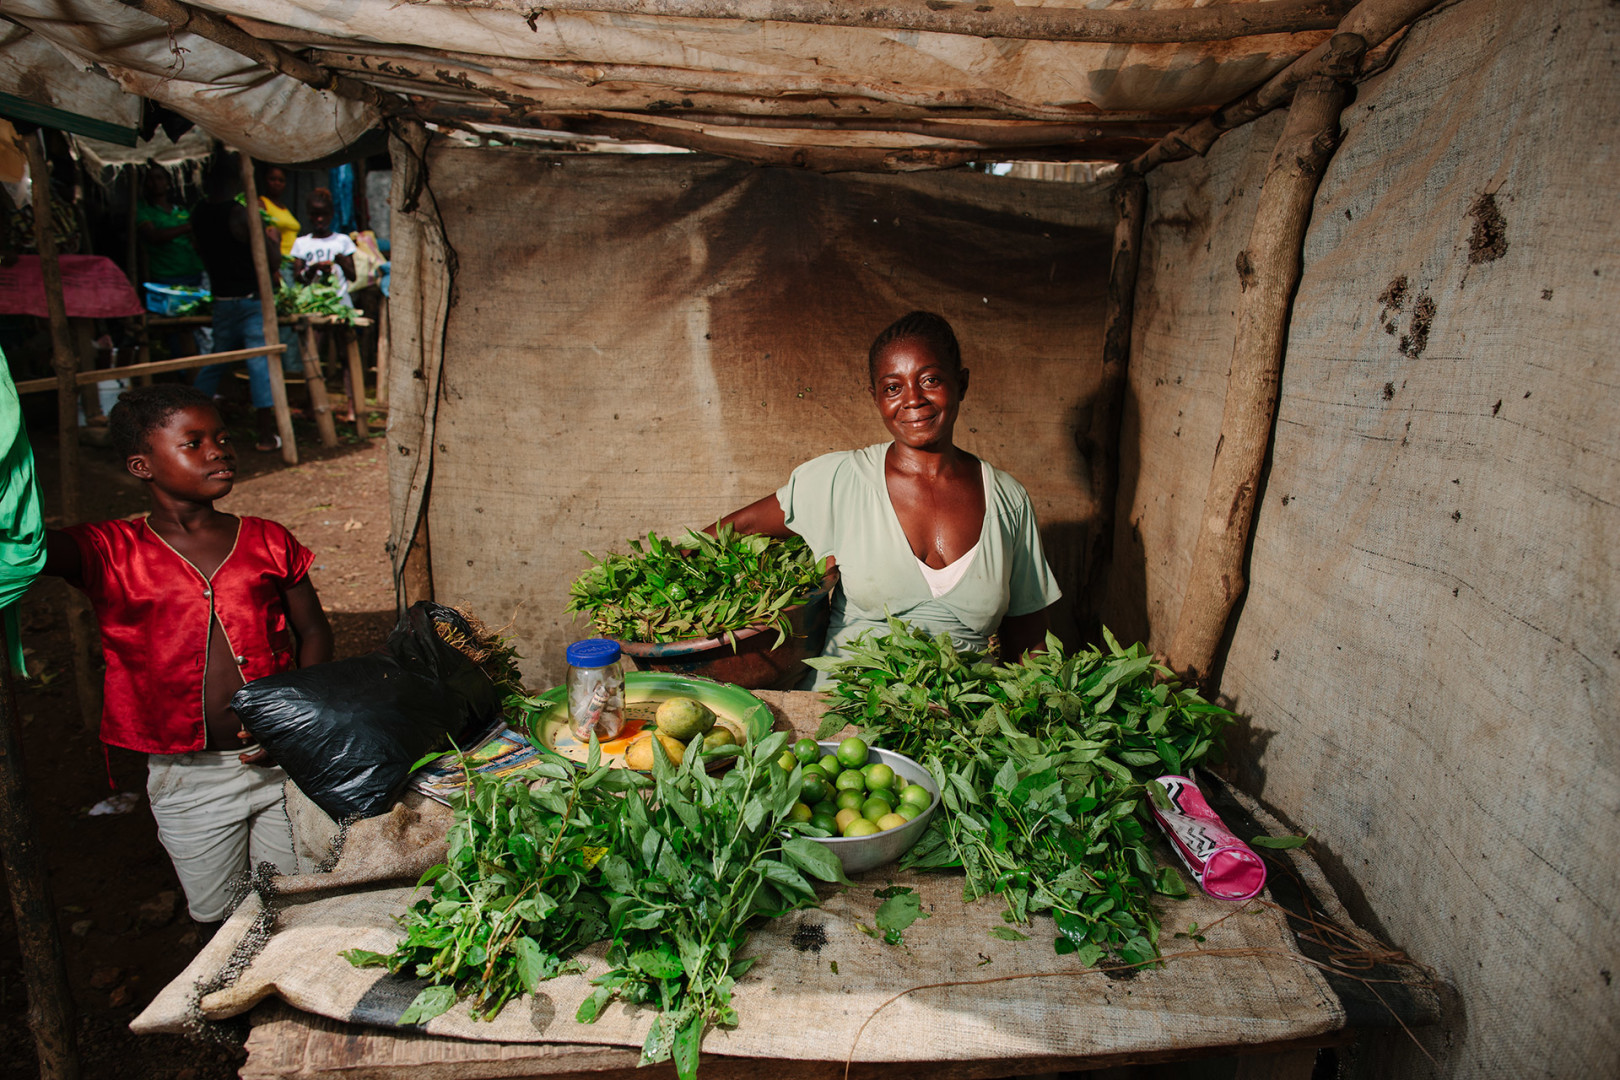 Selling limes and casava leaves in the market